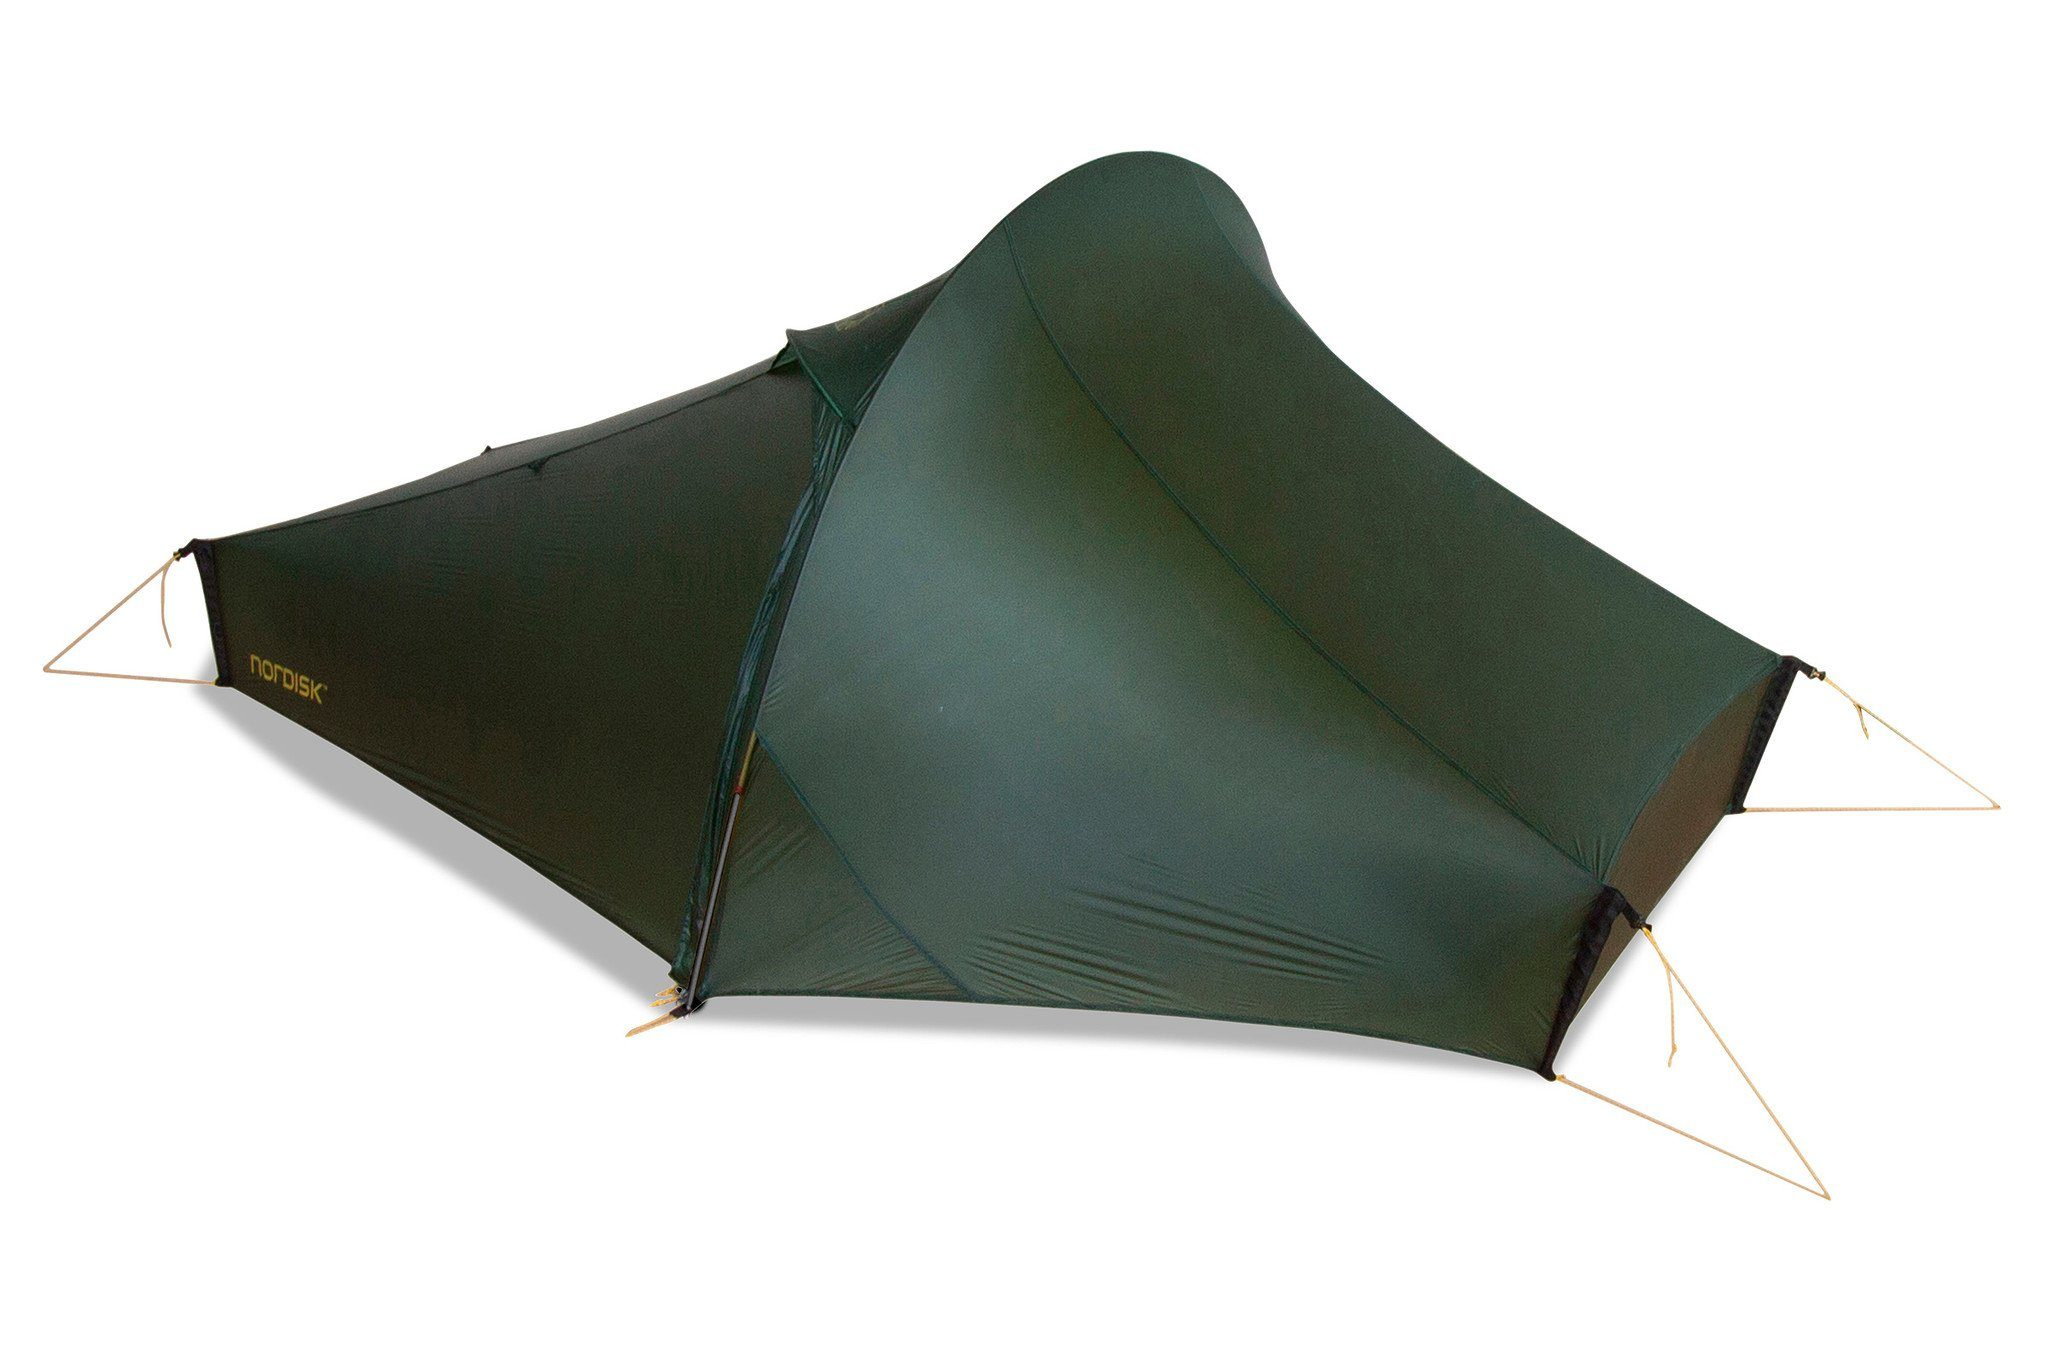 Nordisk Zelt »Telemark 2 Light Weight Tent«